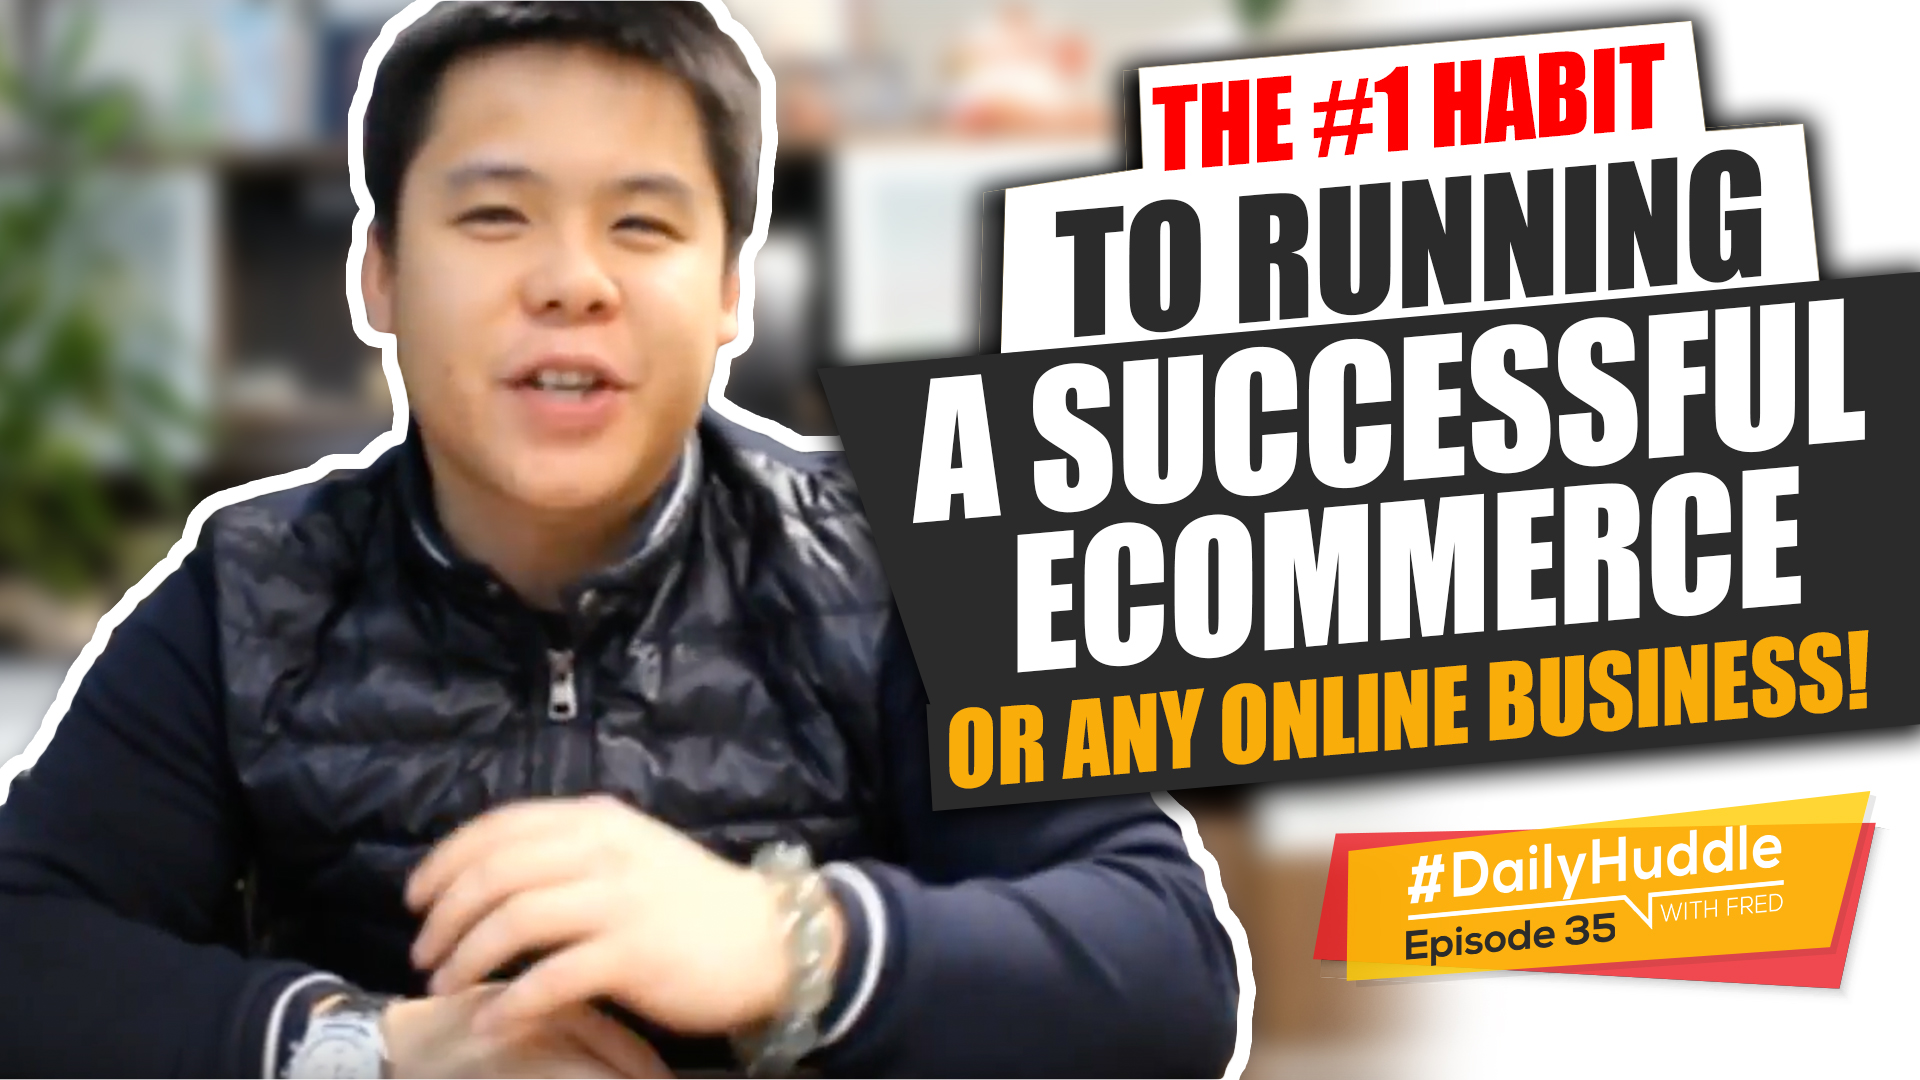 Daily Huddle - Ep 35 | The #1 Habit To Running A Successful eCommerce Or Any Online Business!